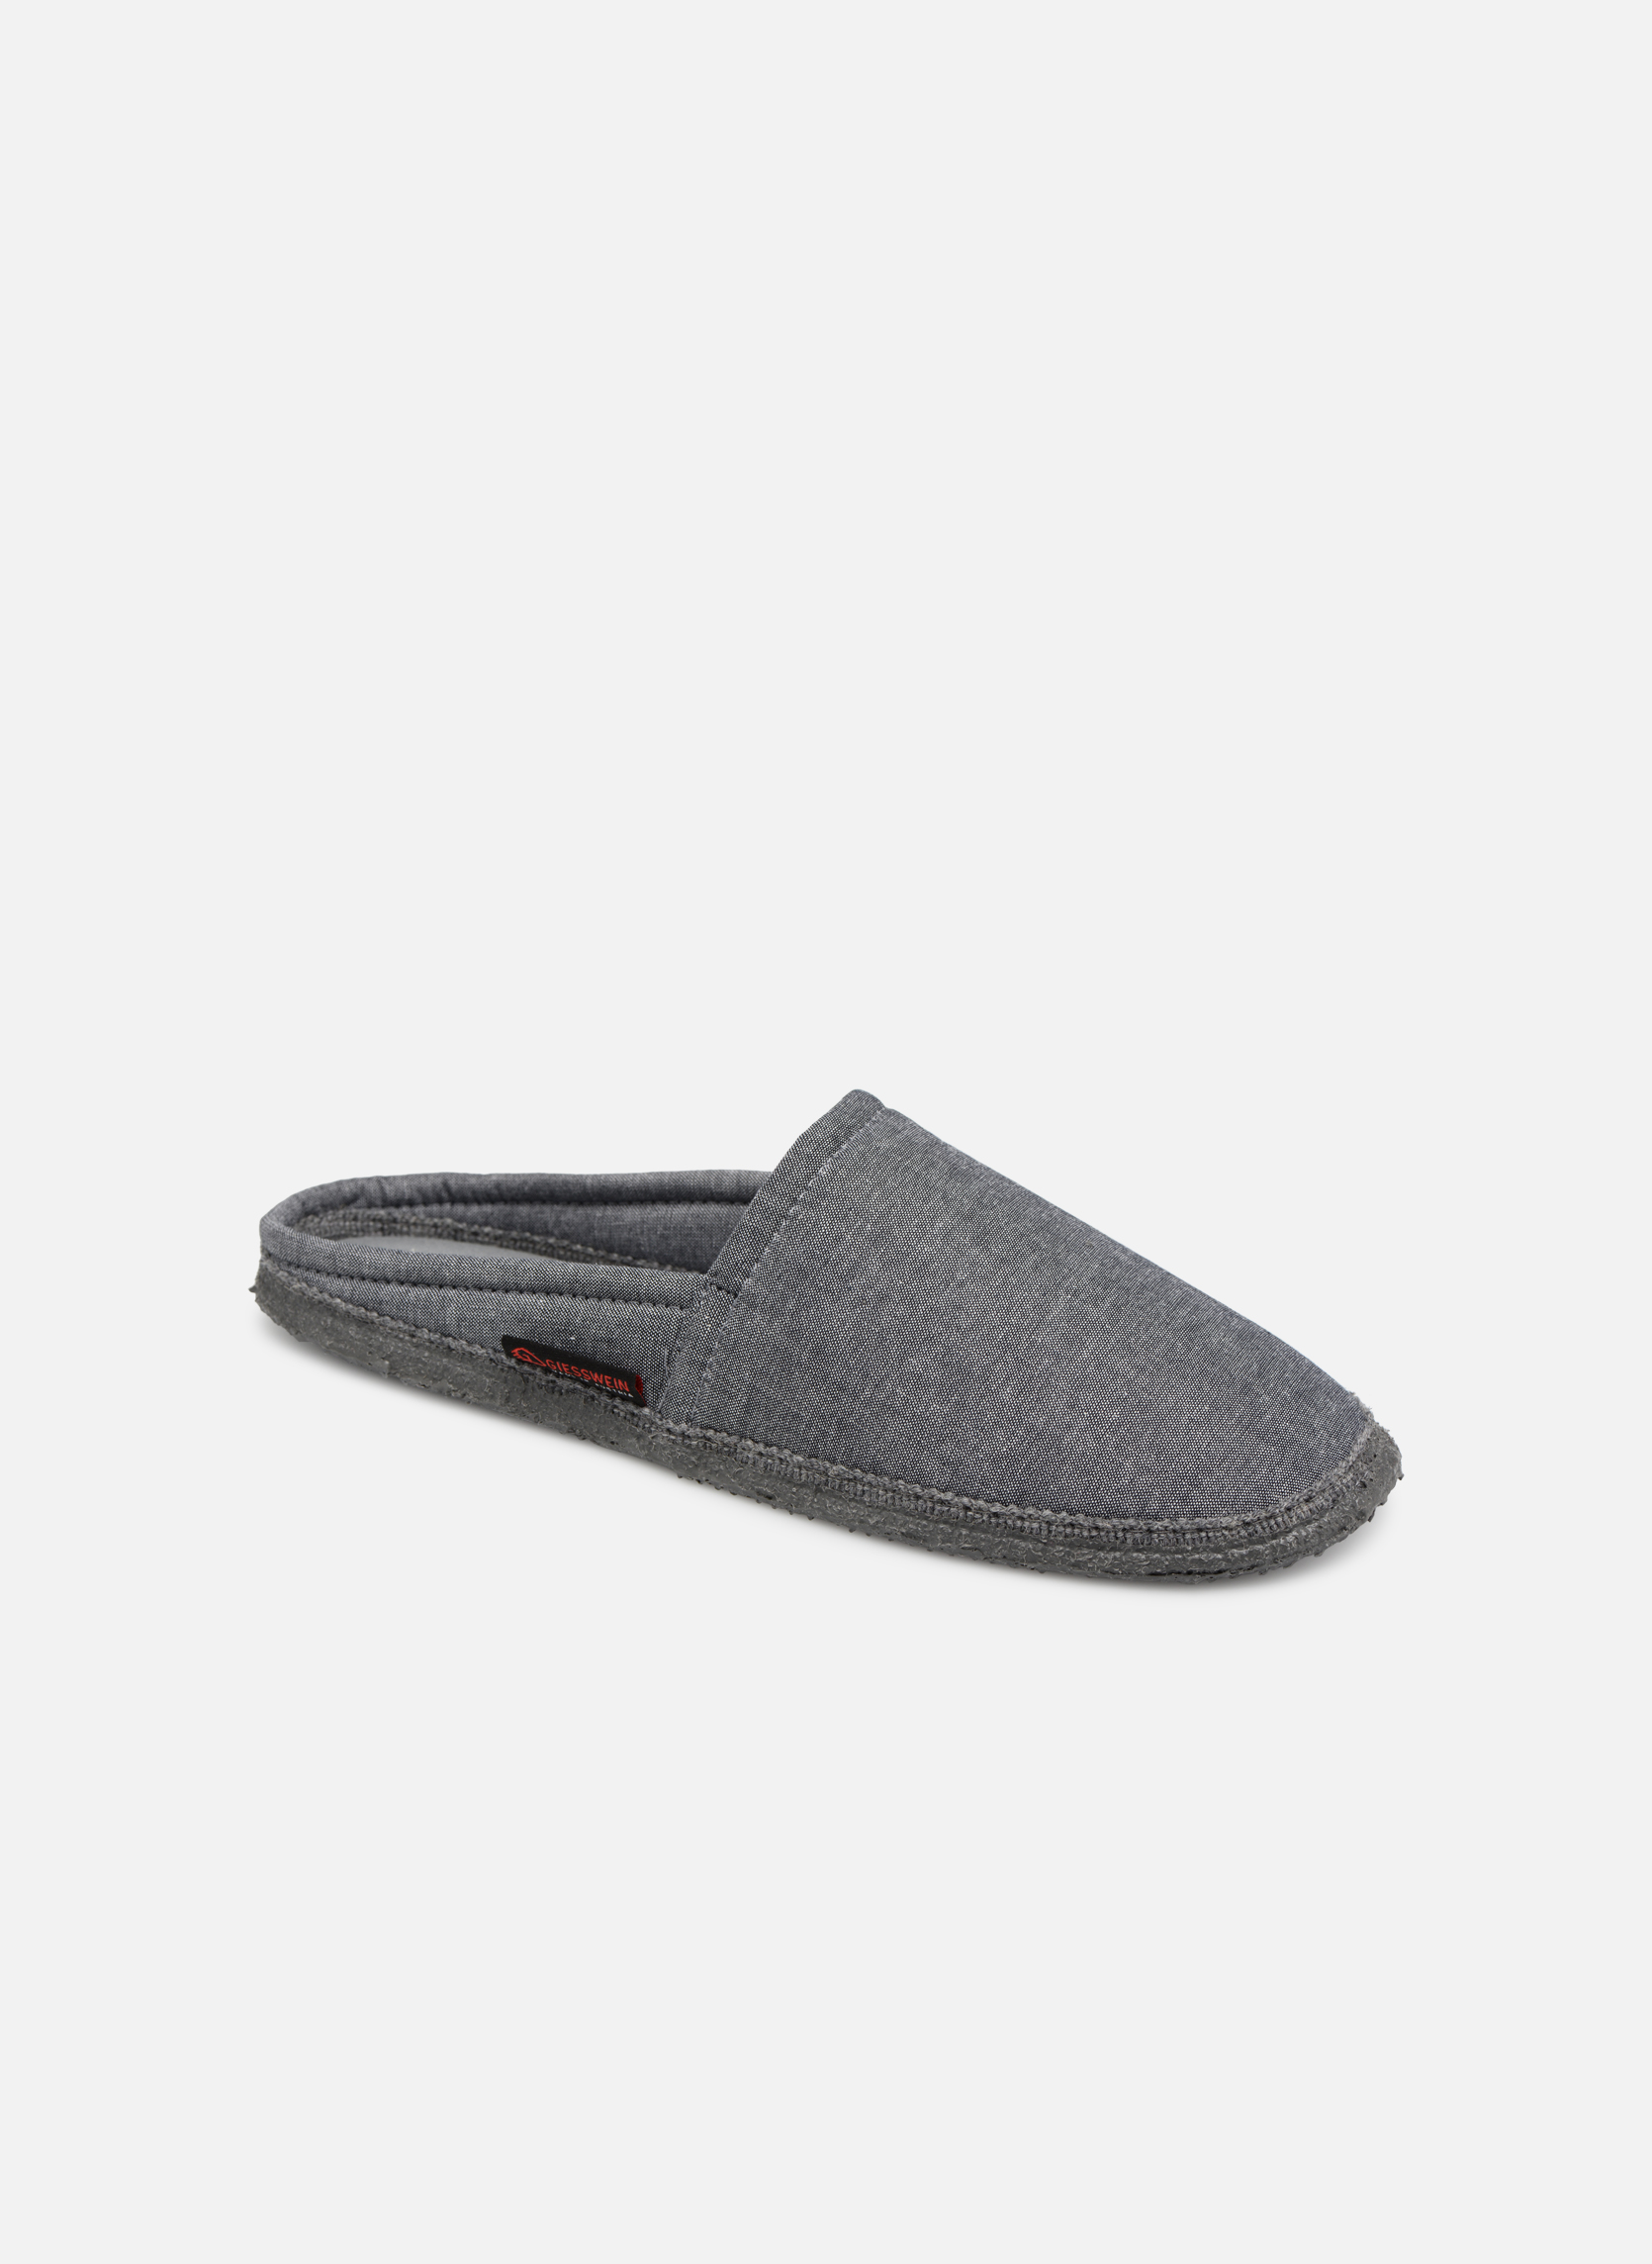 Chaussons Homme Paurach